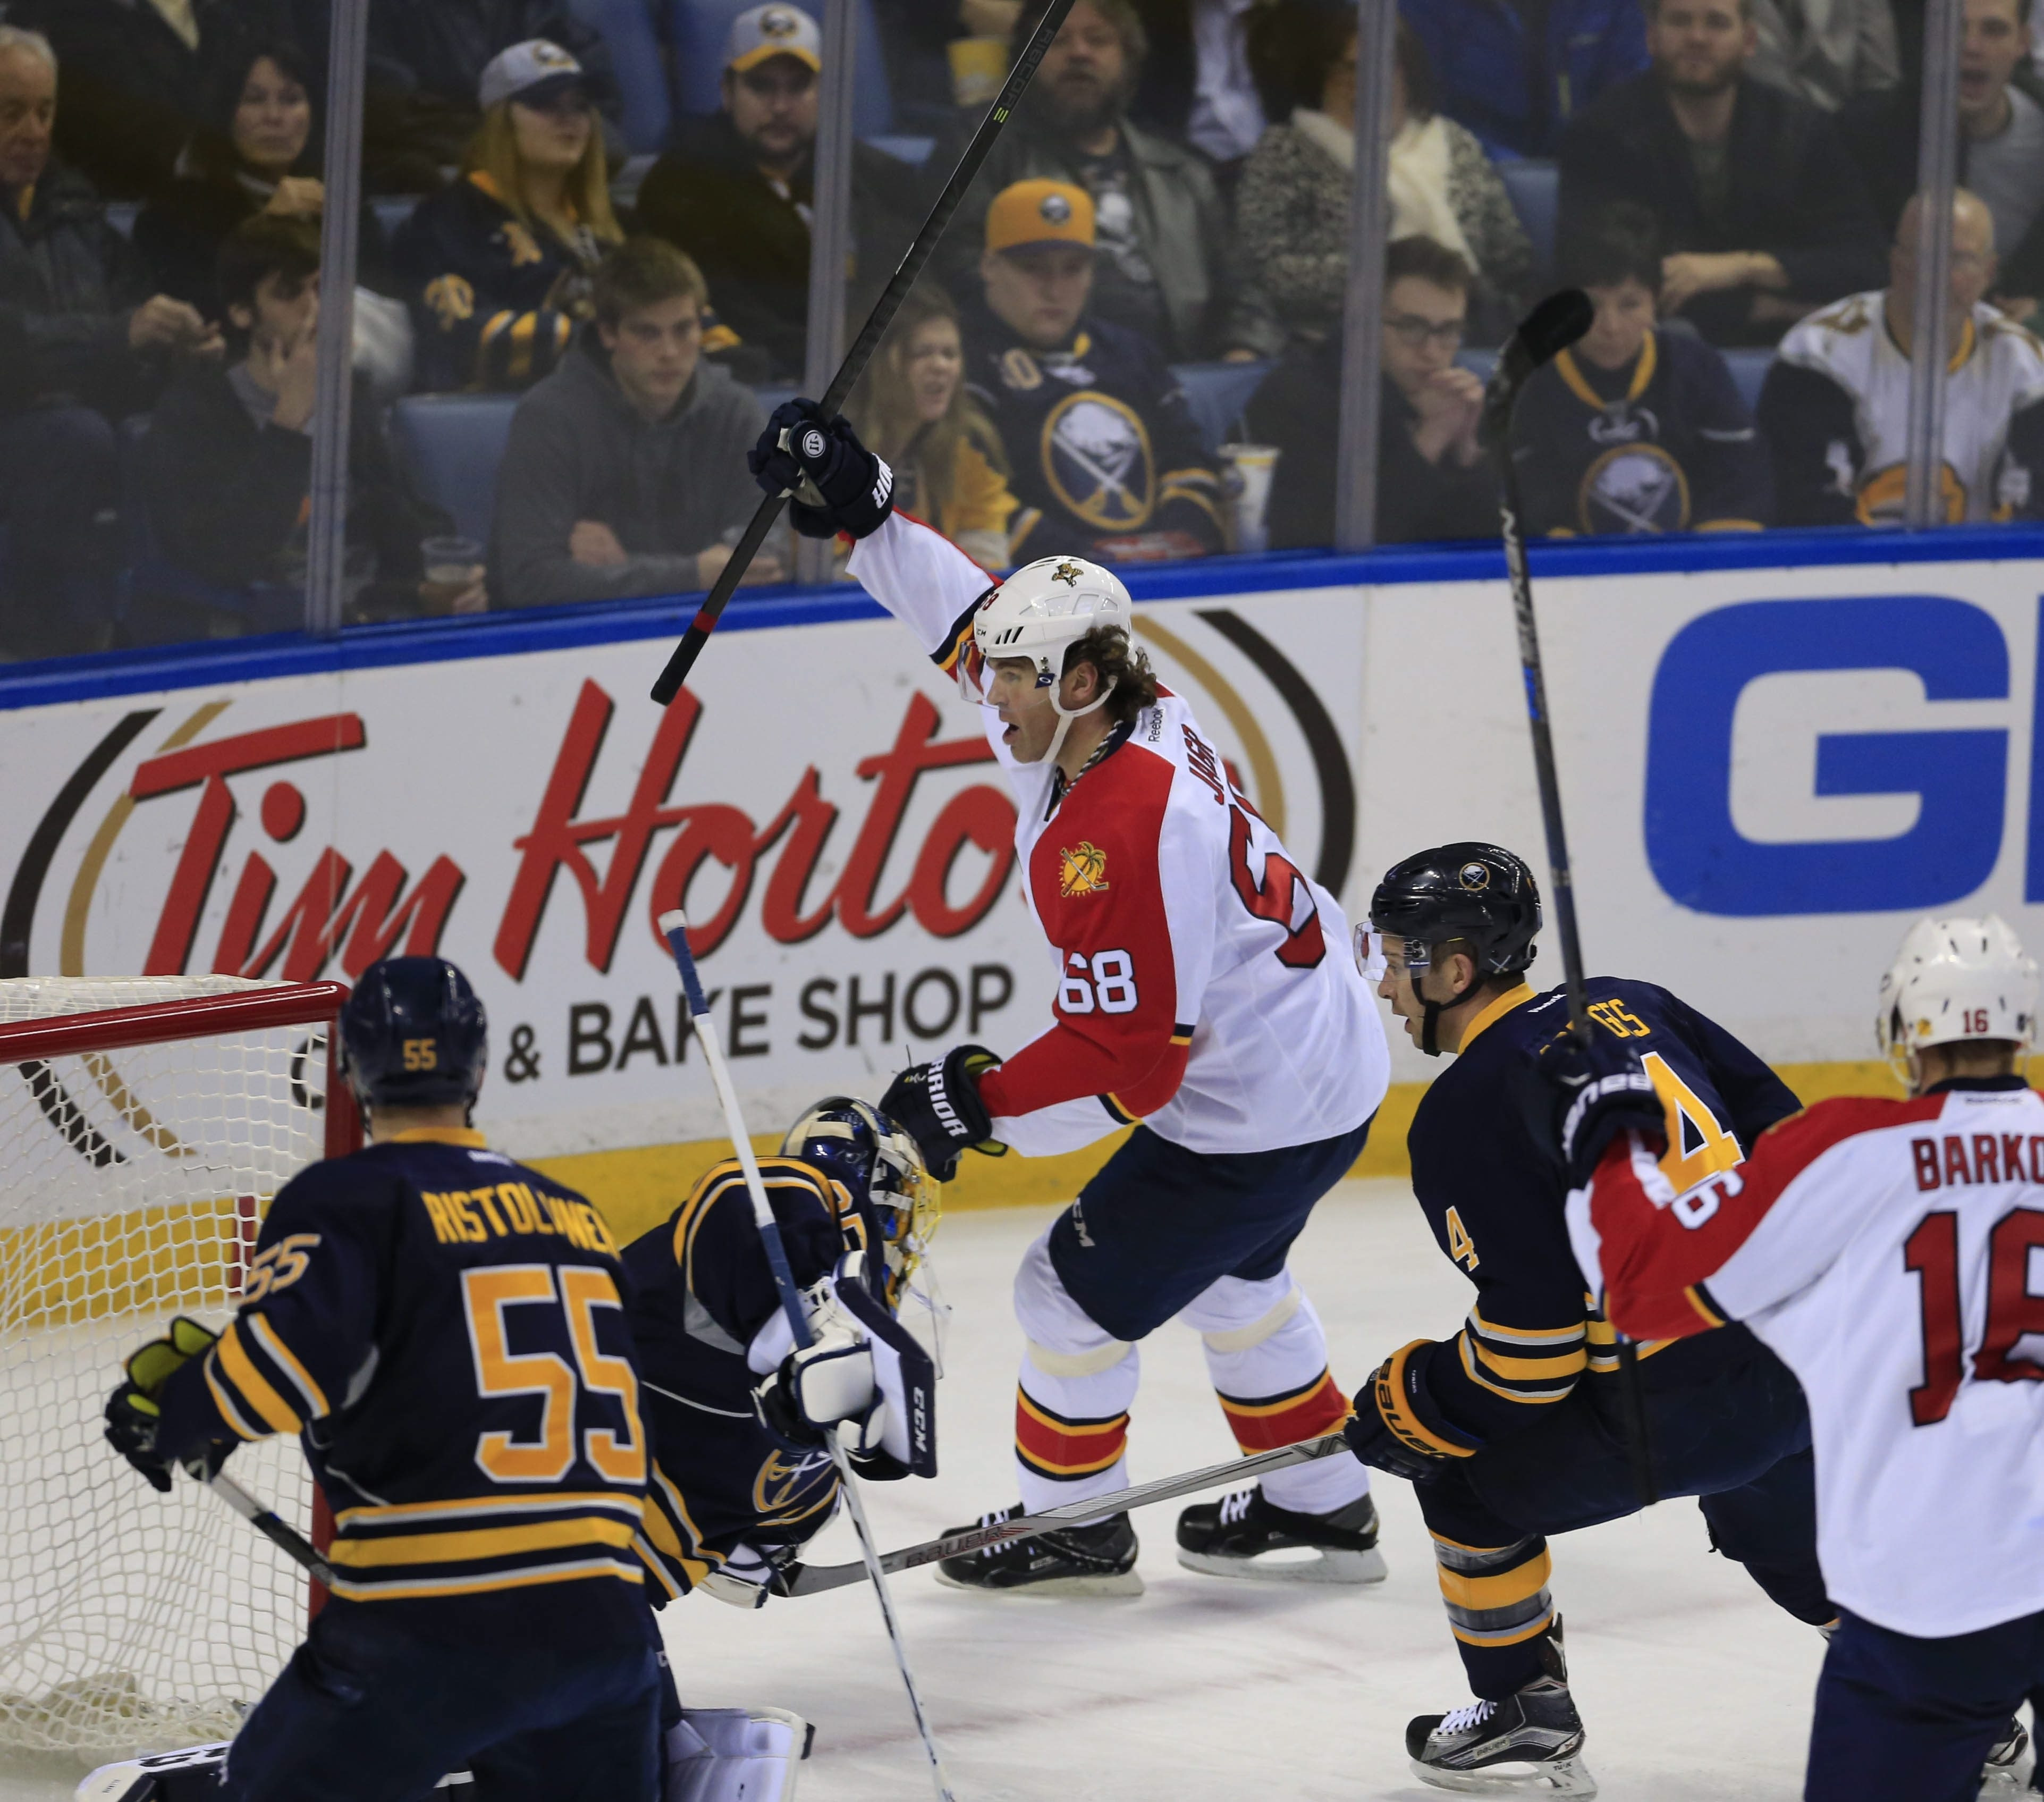 Florida Panthers right winger Jaromir Jagr celebrates a goal against the Buffalo Sabres Tuesday at First Niagara Center.